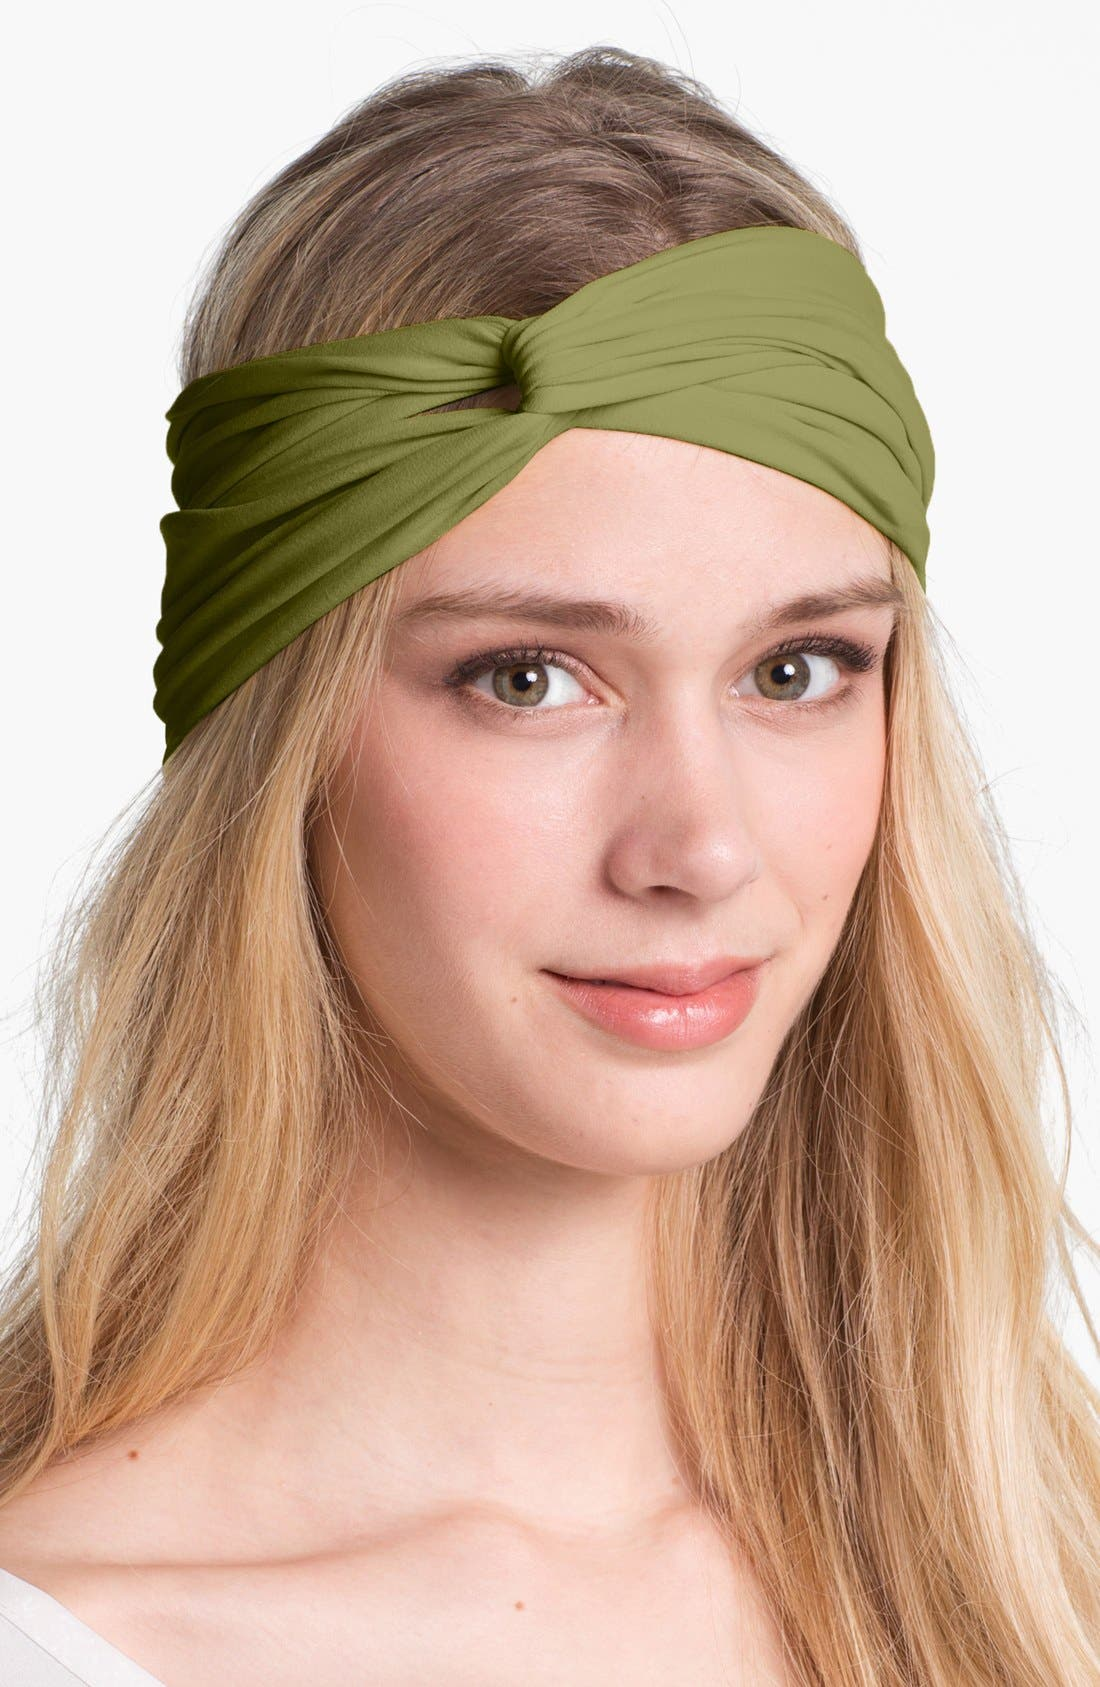 Alternate Image 1 Selected - L. Erickson Interlock Turban Headband